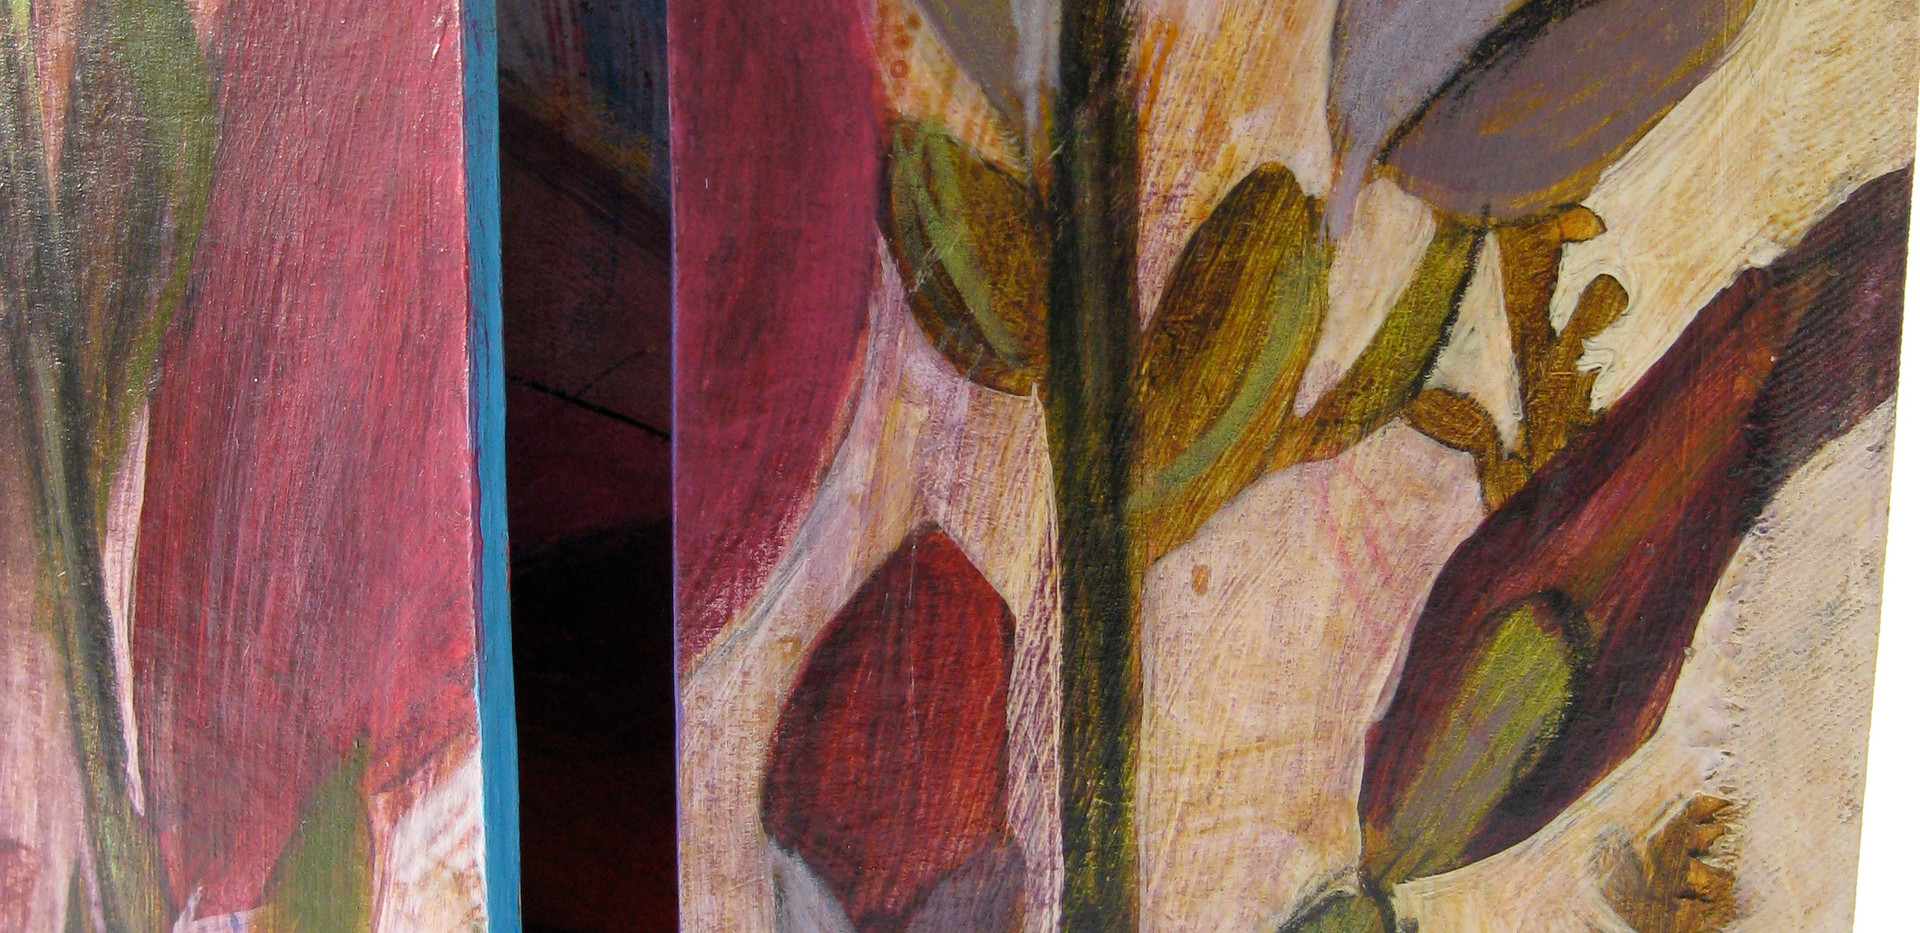 Painting the Poetic detail